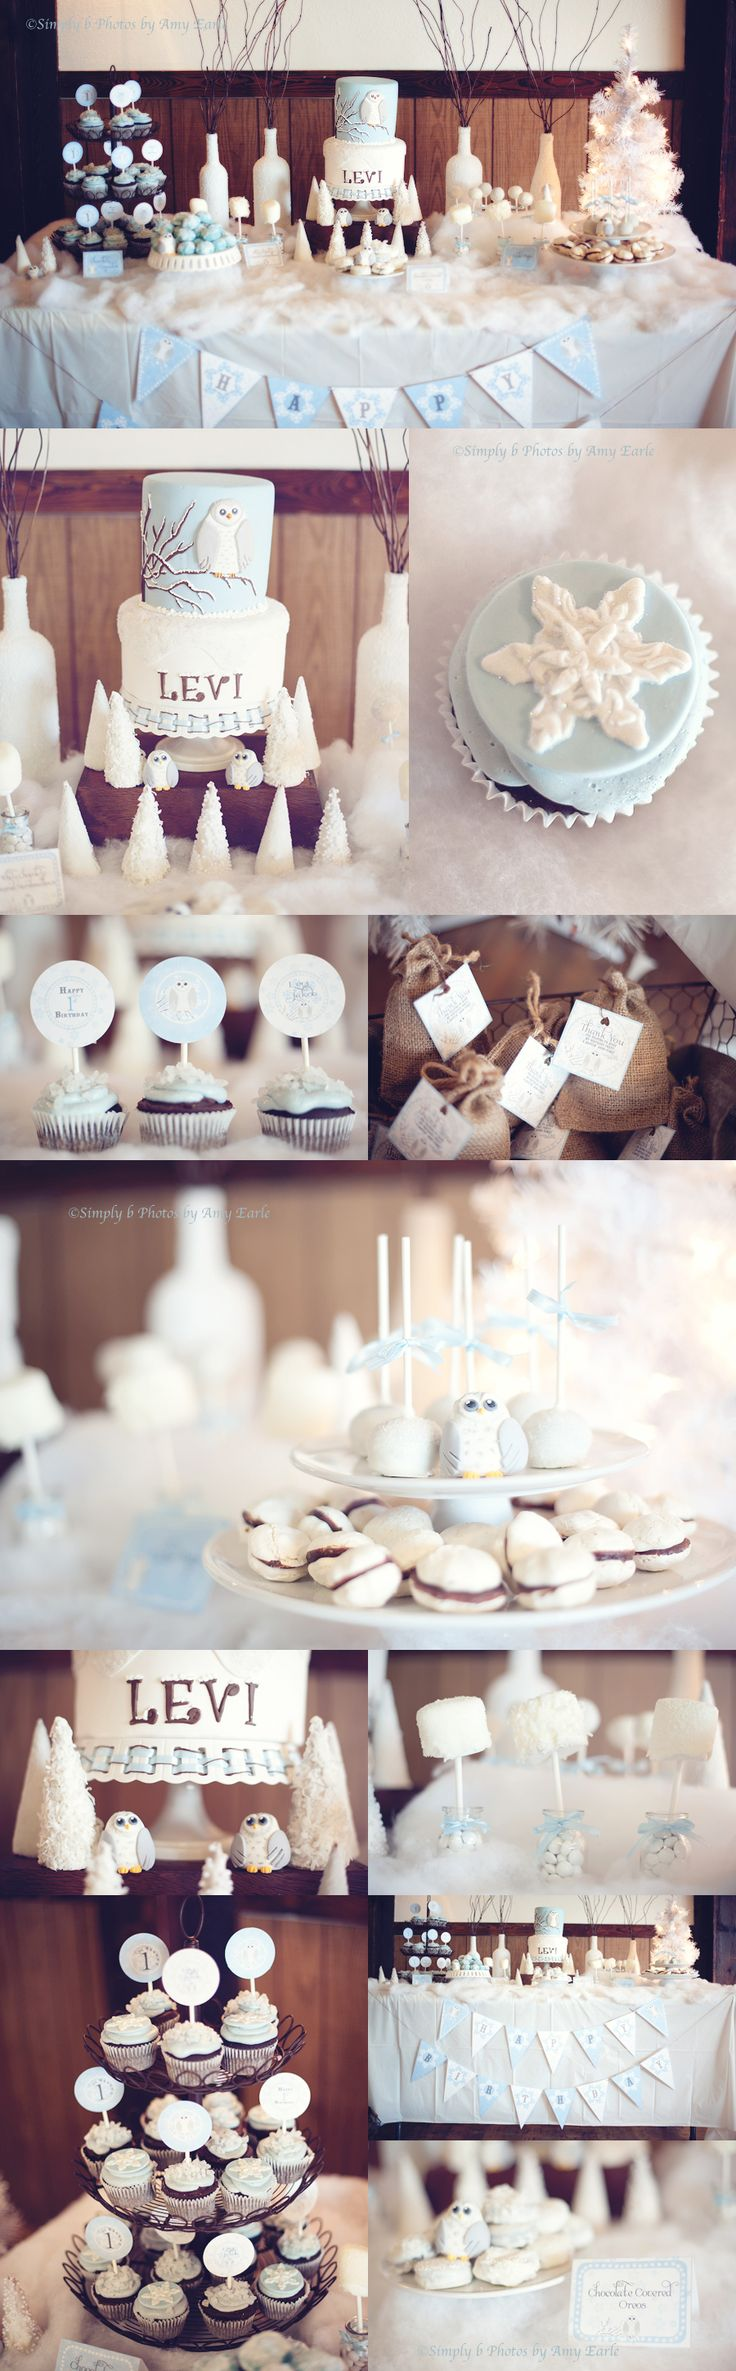 I am speechless!  One of the prettiest set-ups I have ever seen.  Looks like a winter wonderland, and I LOVE the snowy owls!